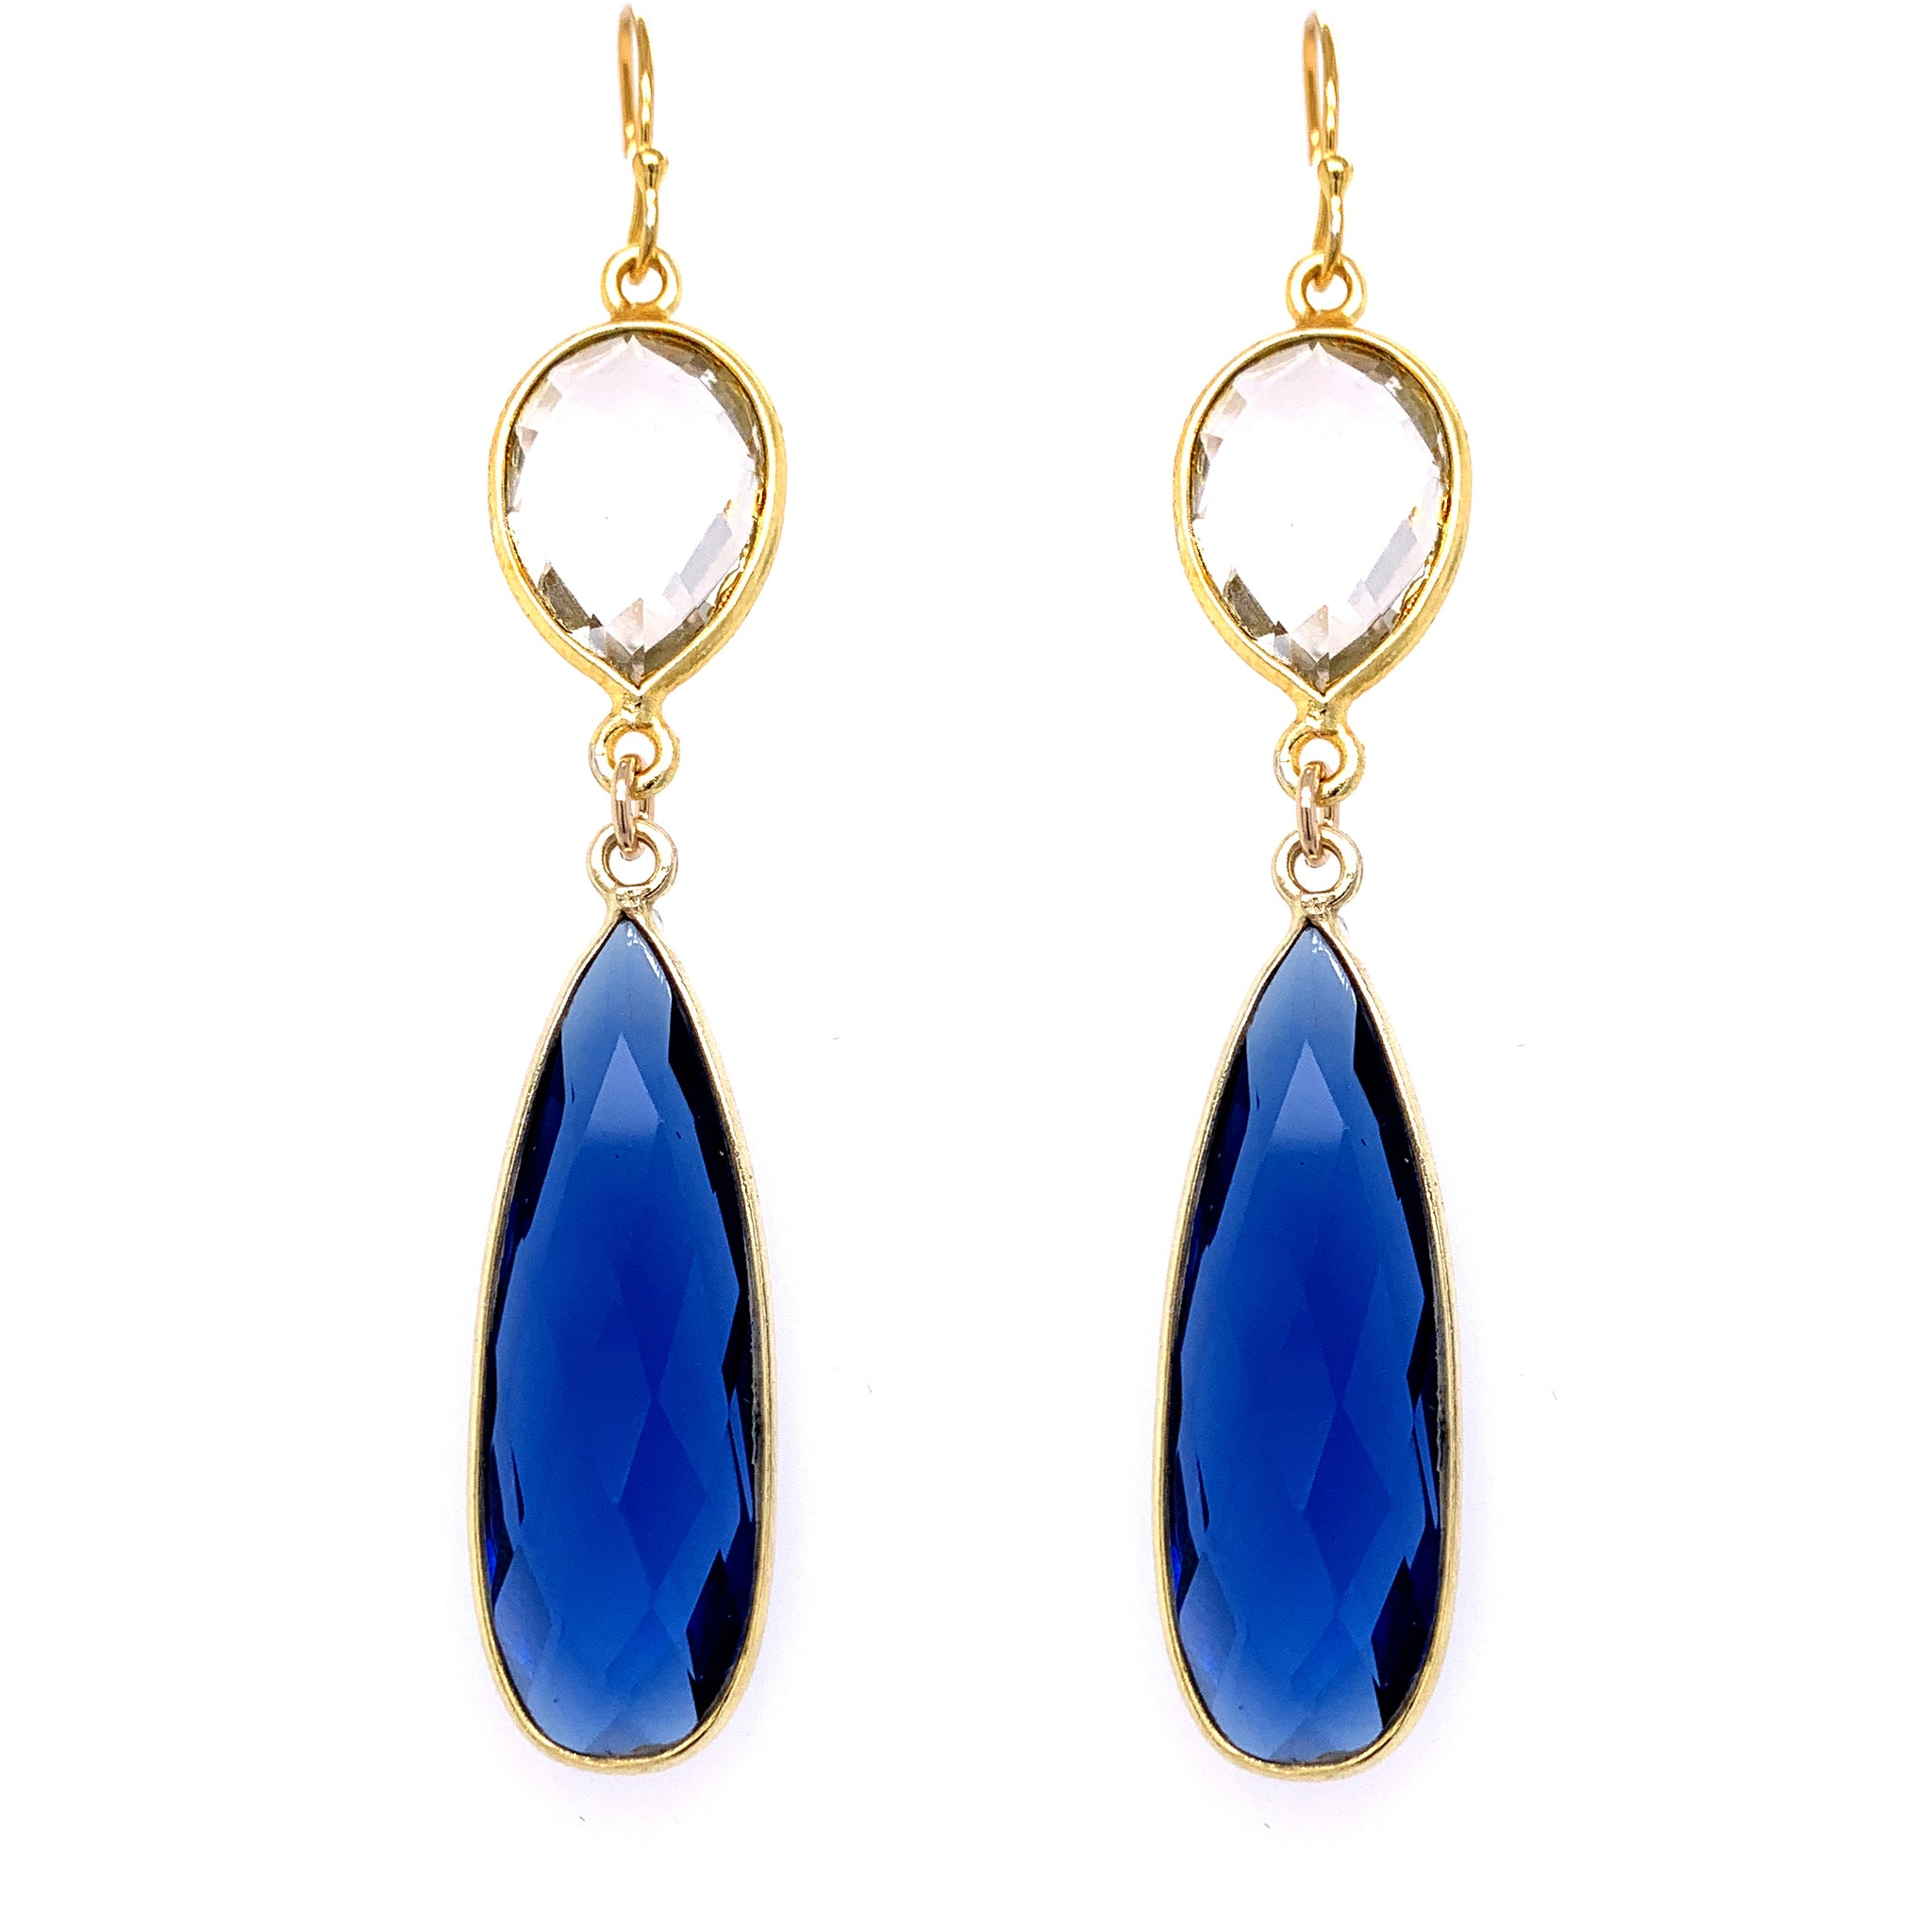 Crystal & London Blue Quartz Regal Double Earring Drops, Gold